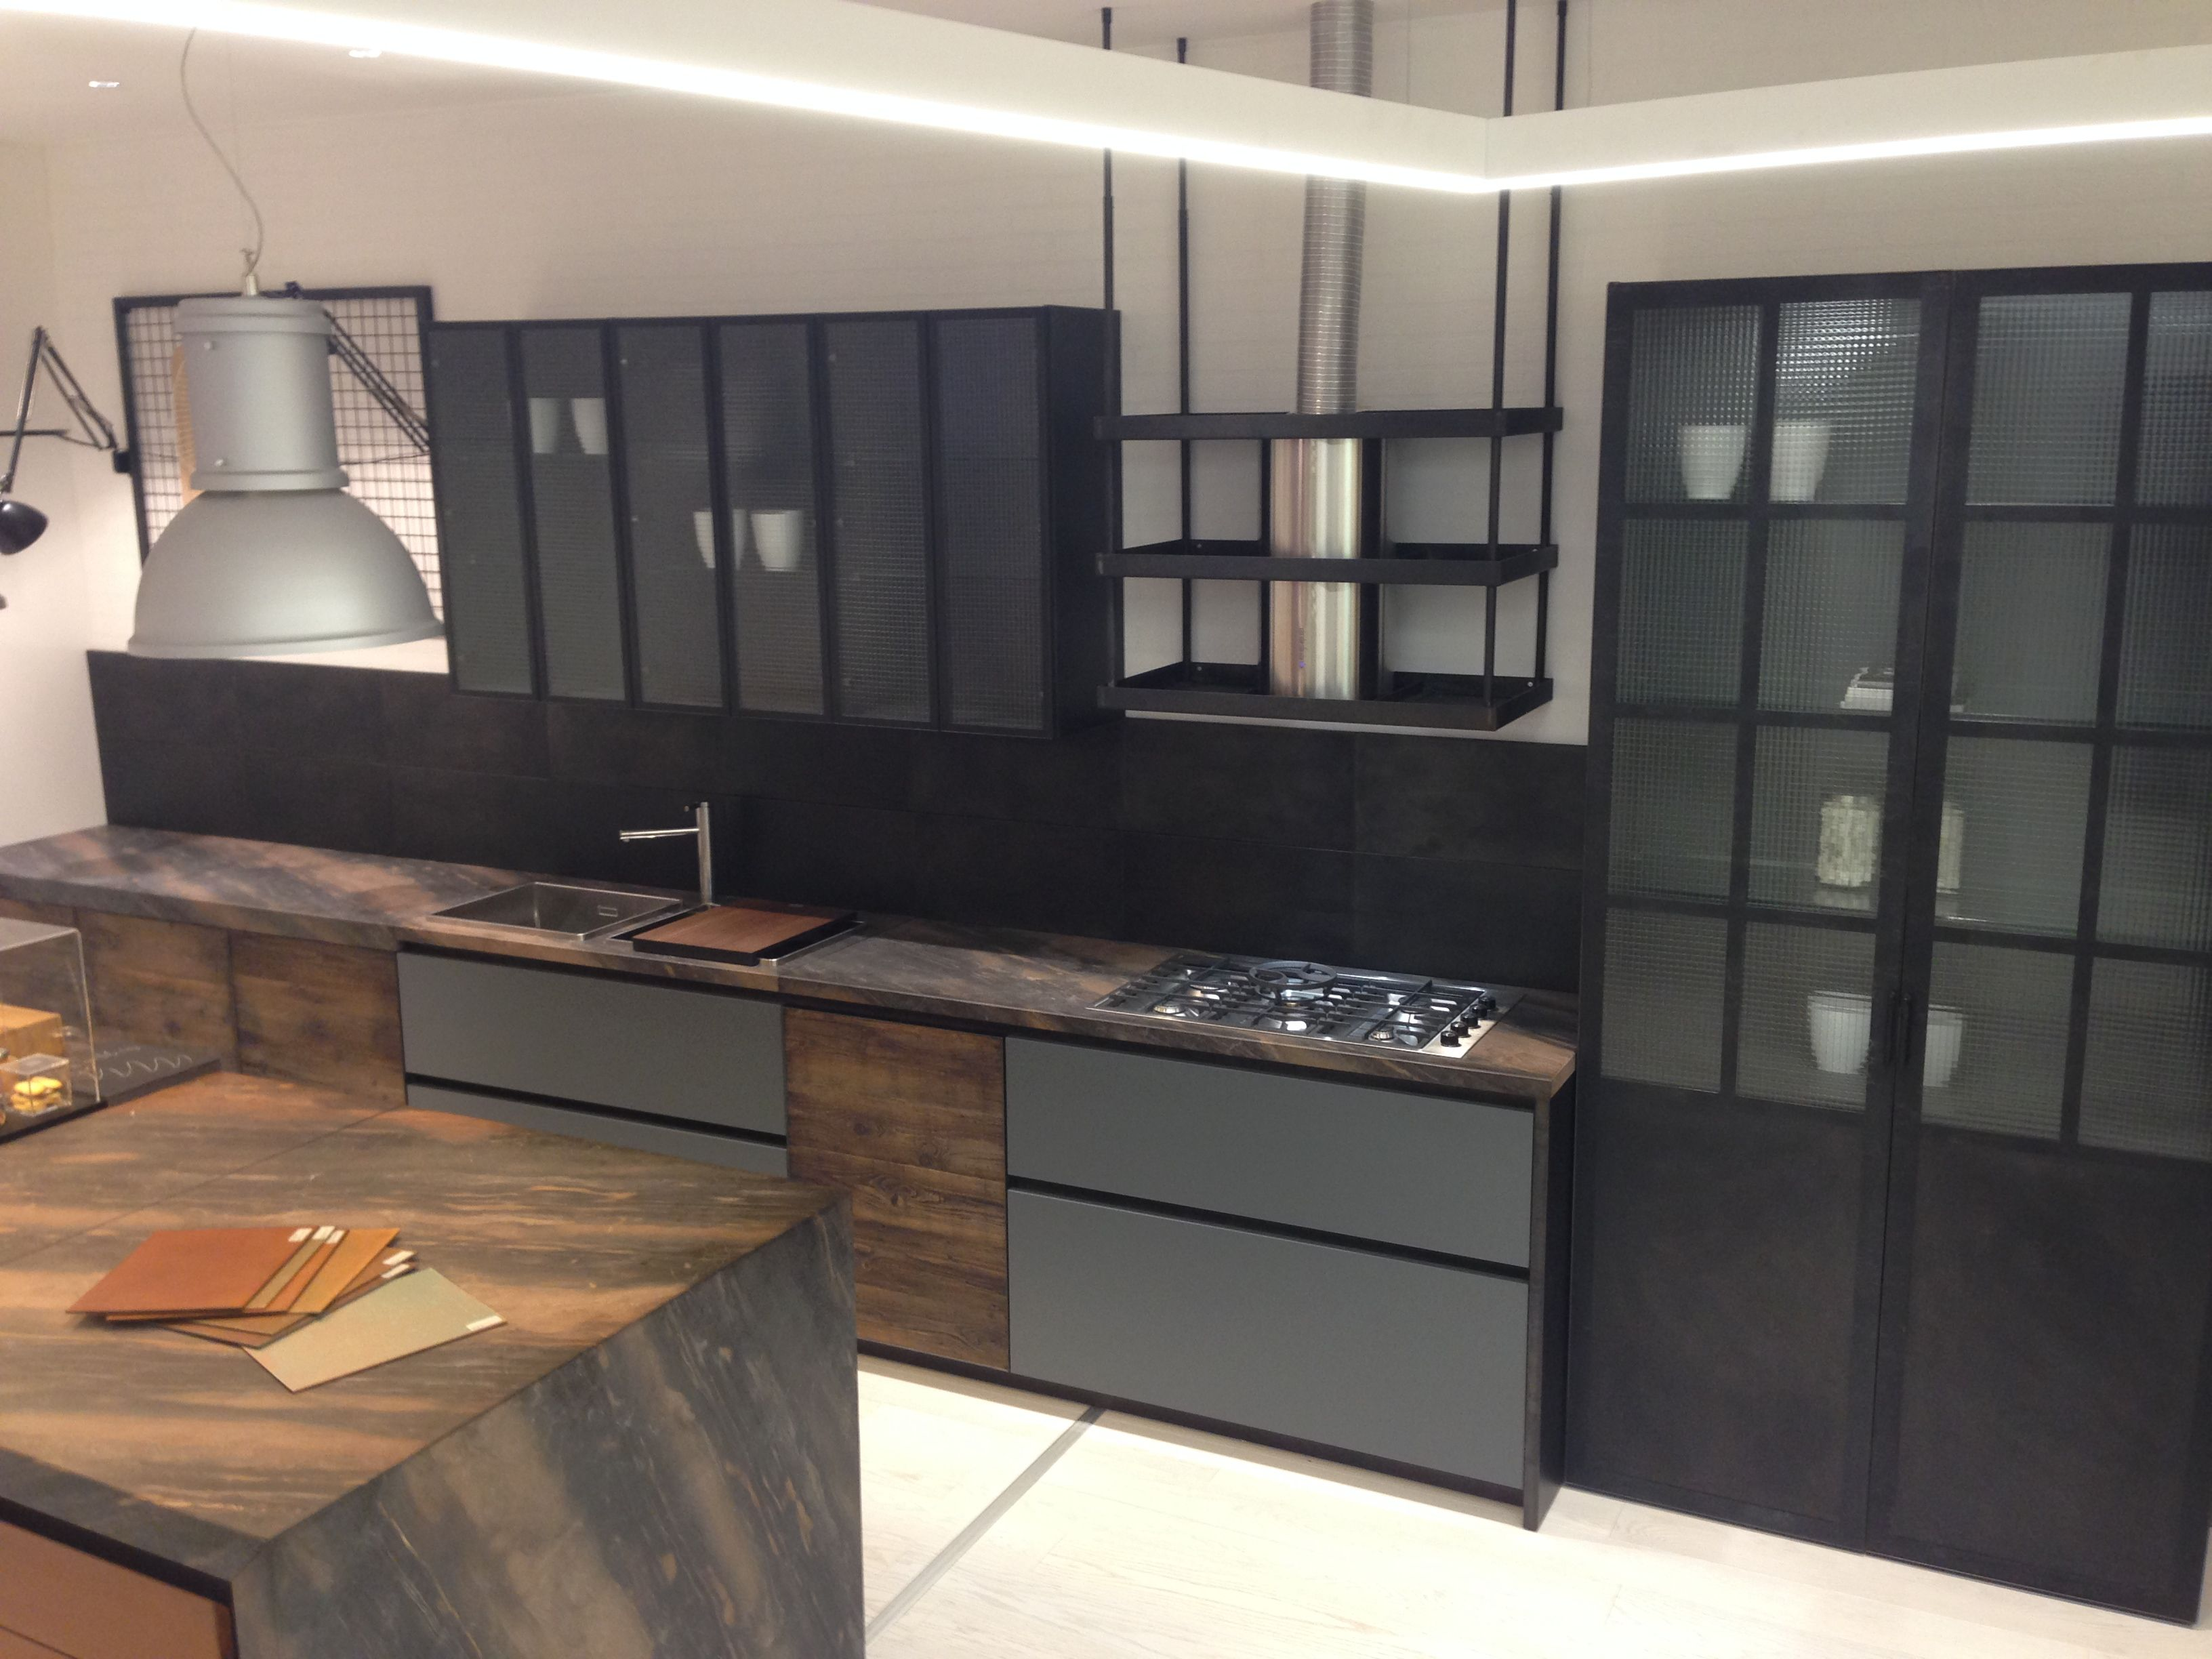 ASTER CUCINE FACTORY COLLECTION - RUSTIC MODERN - AVAILABLE AT ...